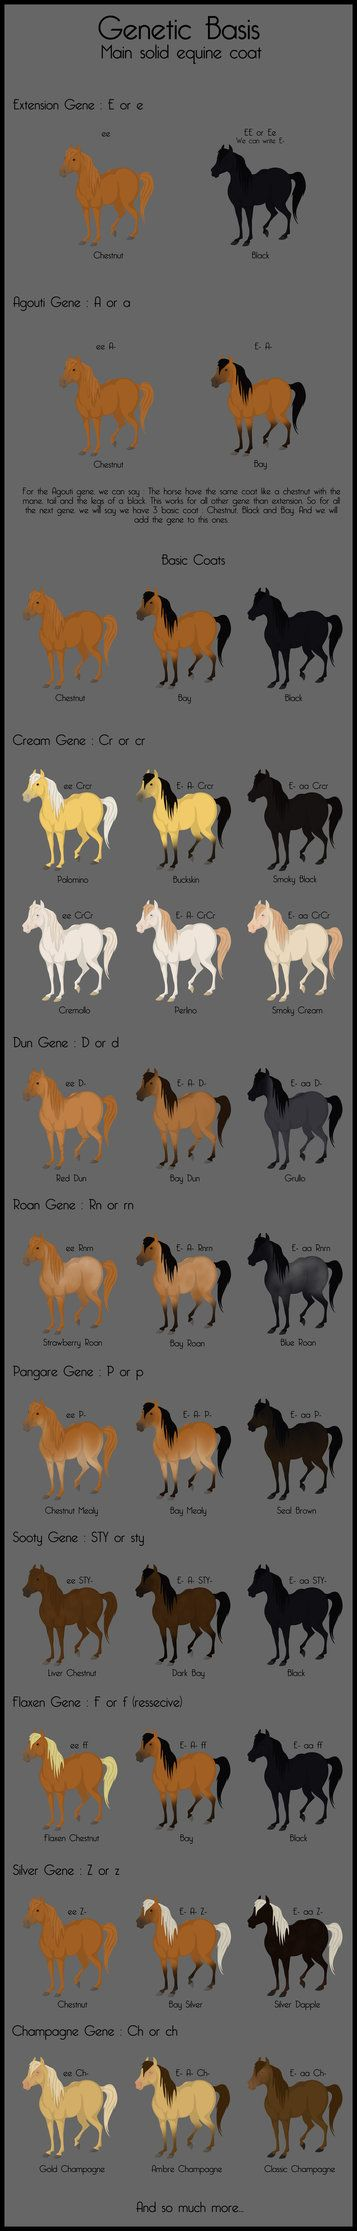 DeviantArt: More Collections Like Chestnut Color Genetics Chart by MagicWindsStables